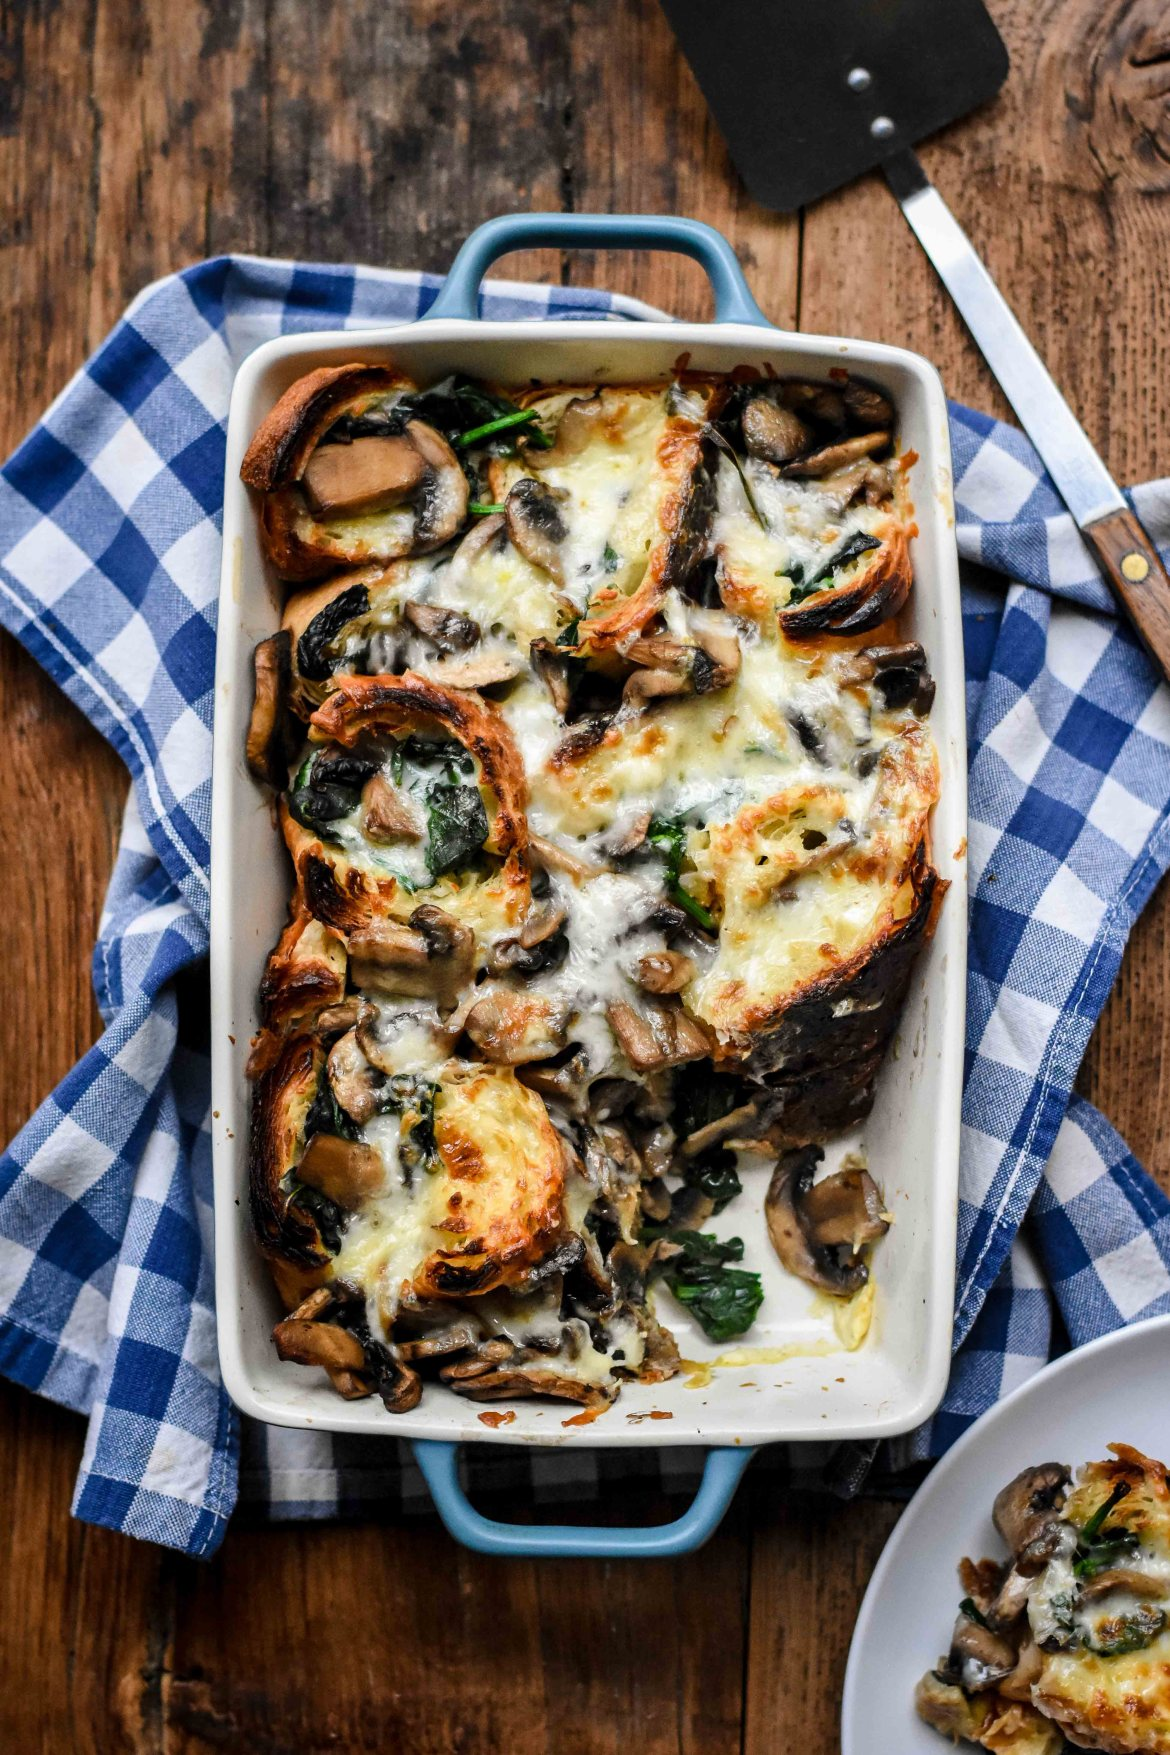 Savory Croissant Casserole with Mushrooms, Spinach and Cheese